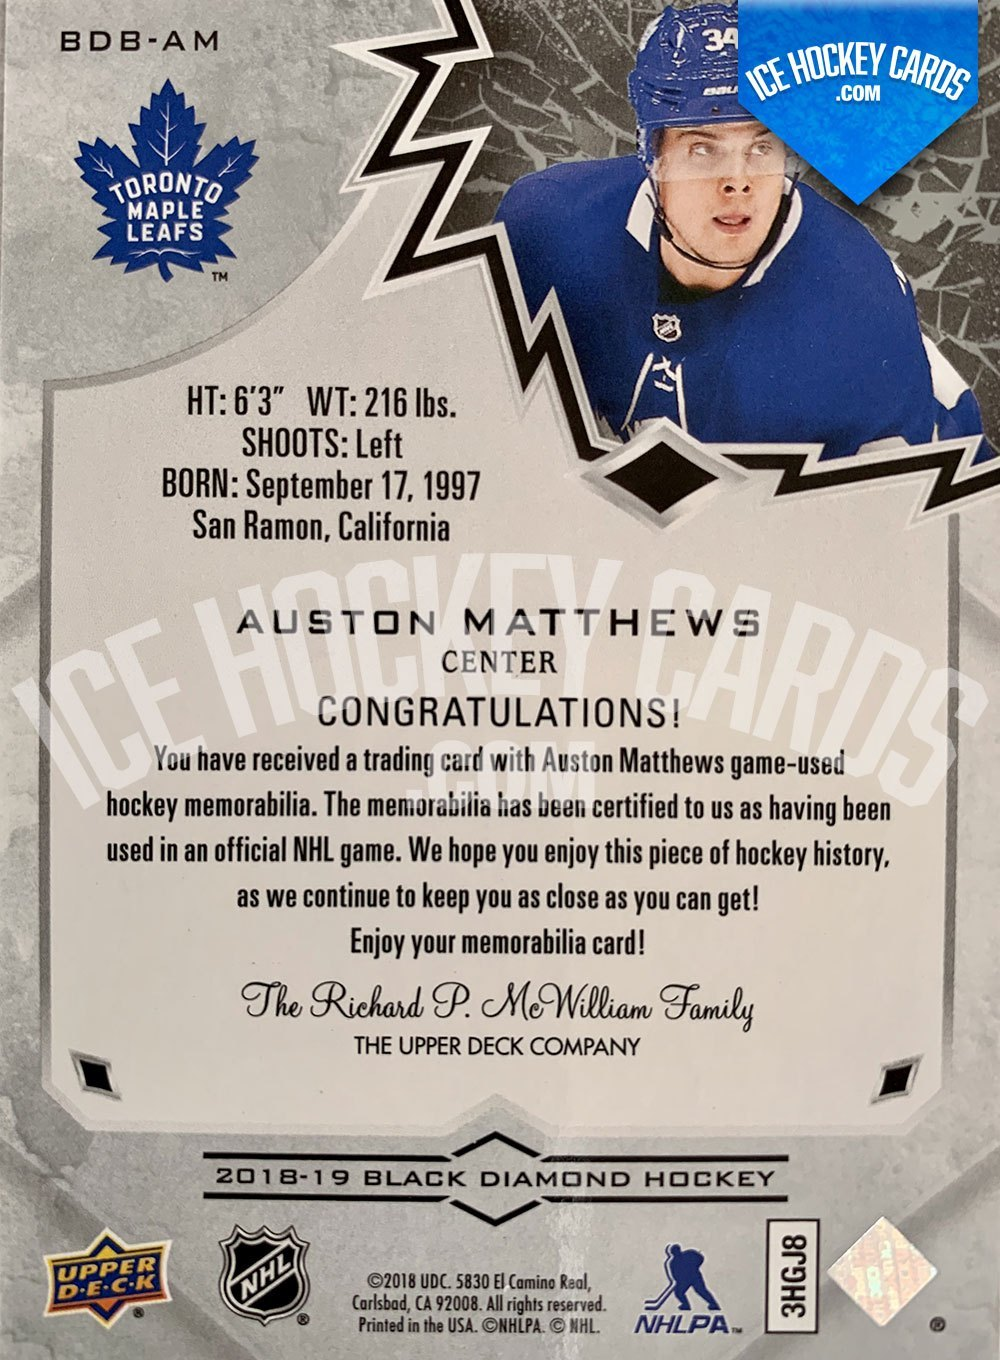 Upper Deck - Black Diamond 2018-19 - Auston Matthews Relics Base Card back